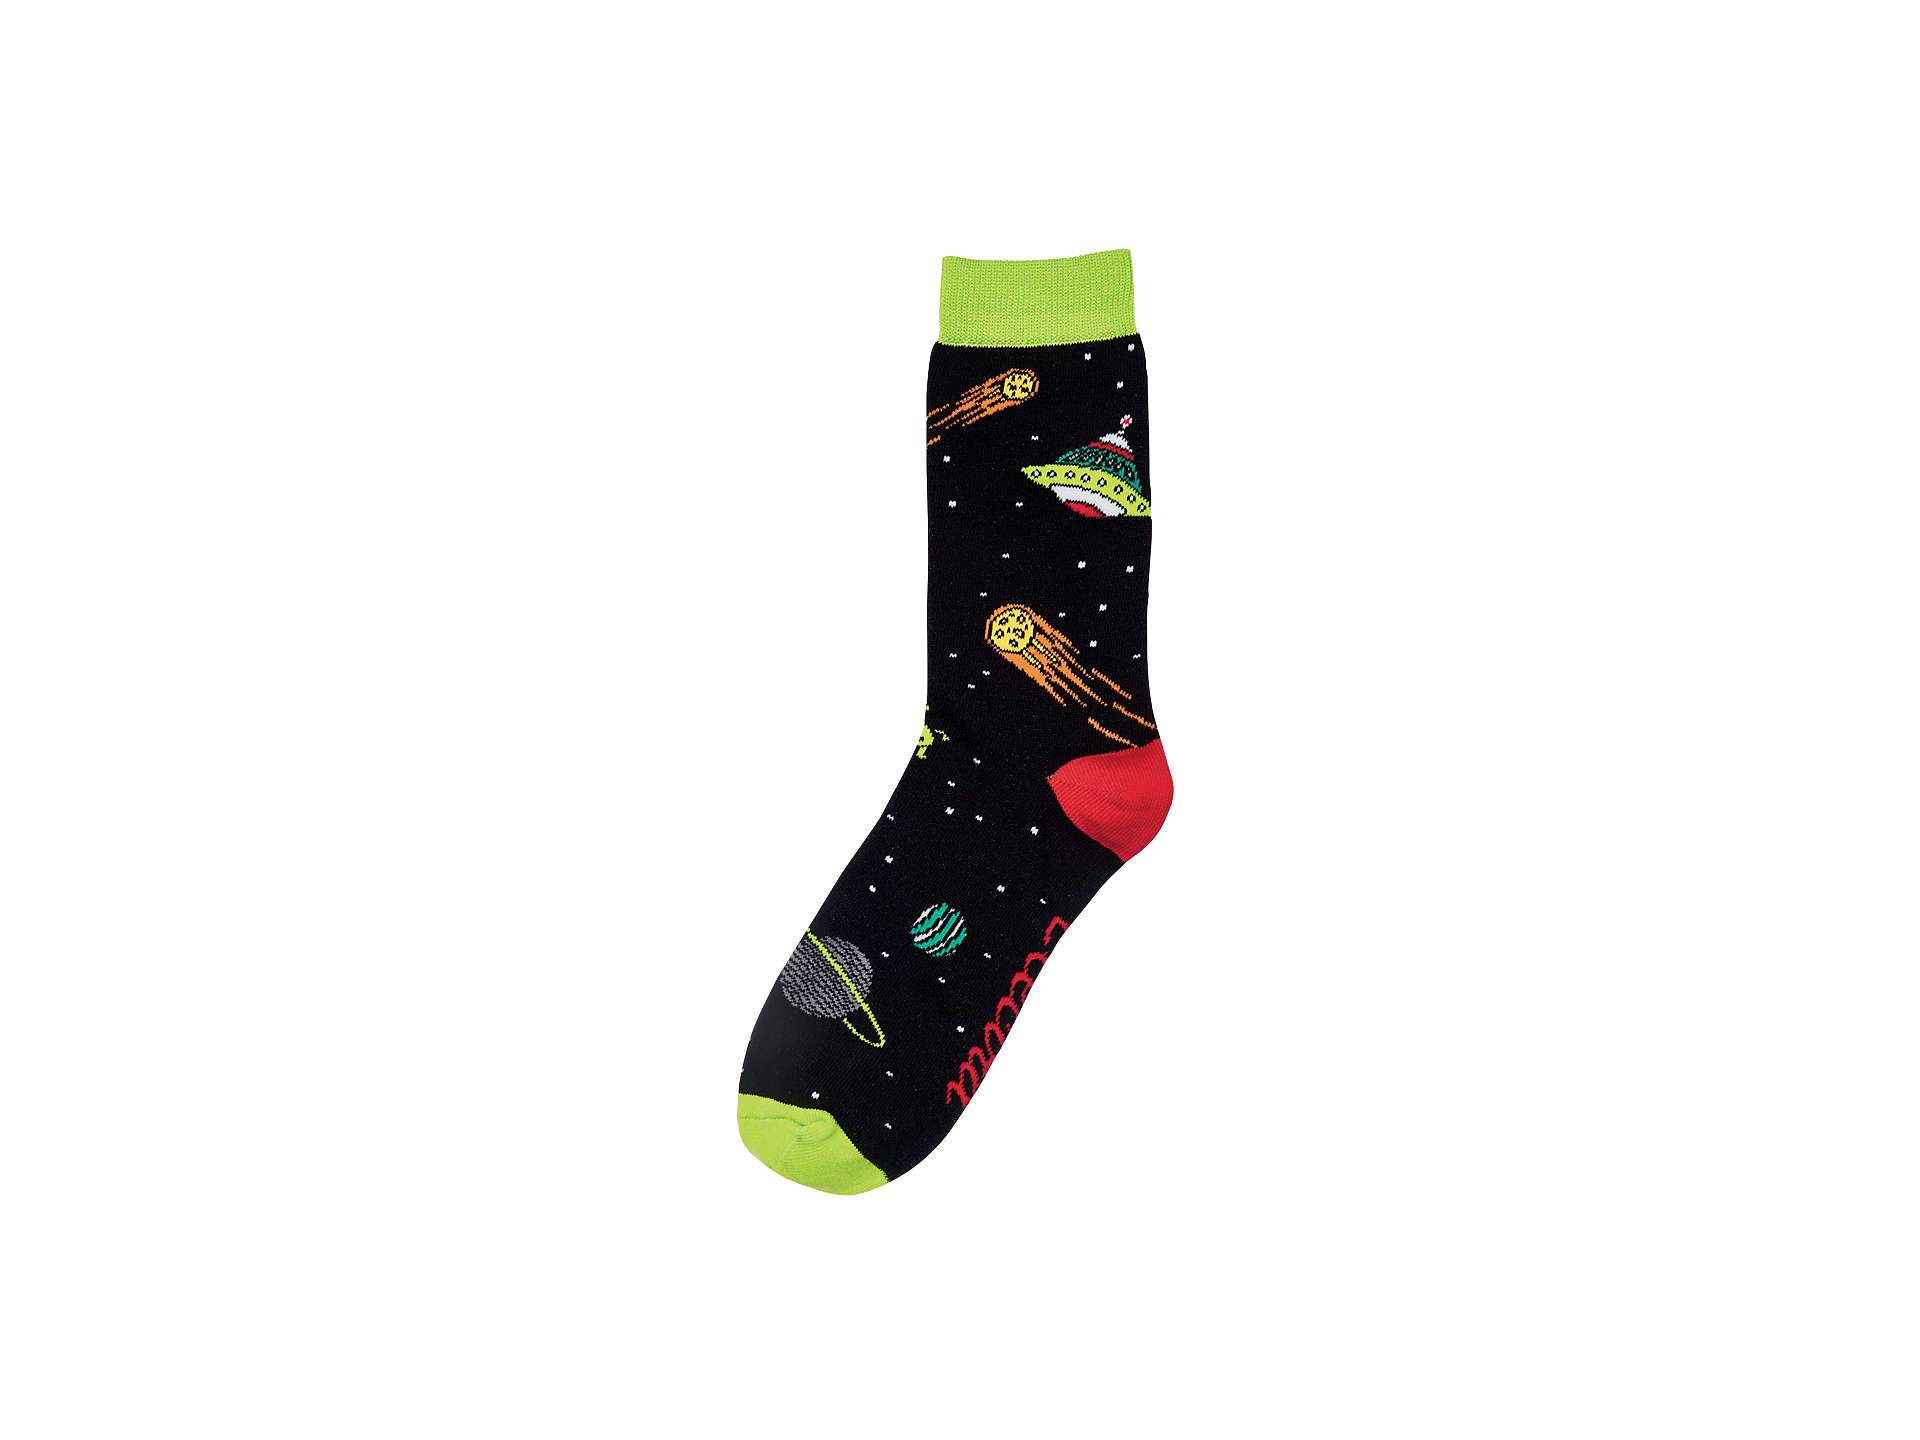 Electra Mens One Size Socks